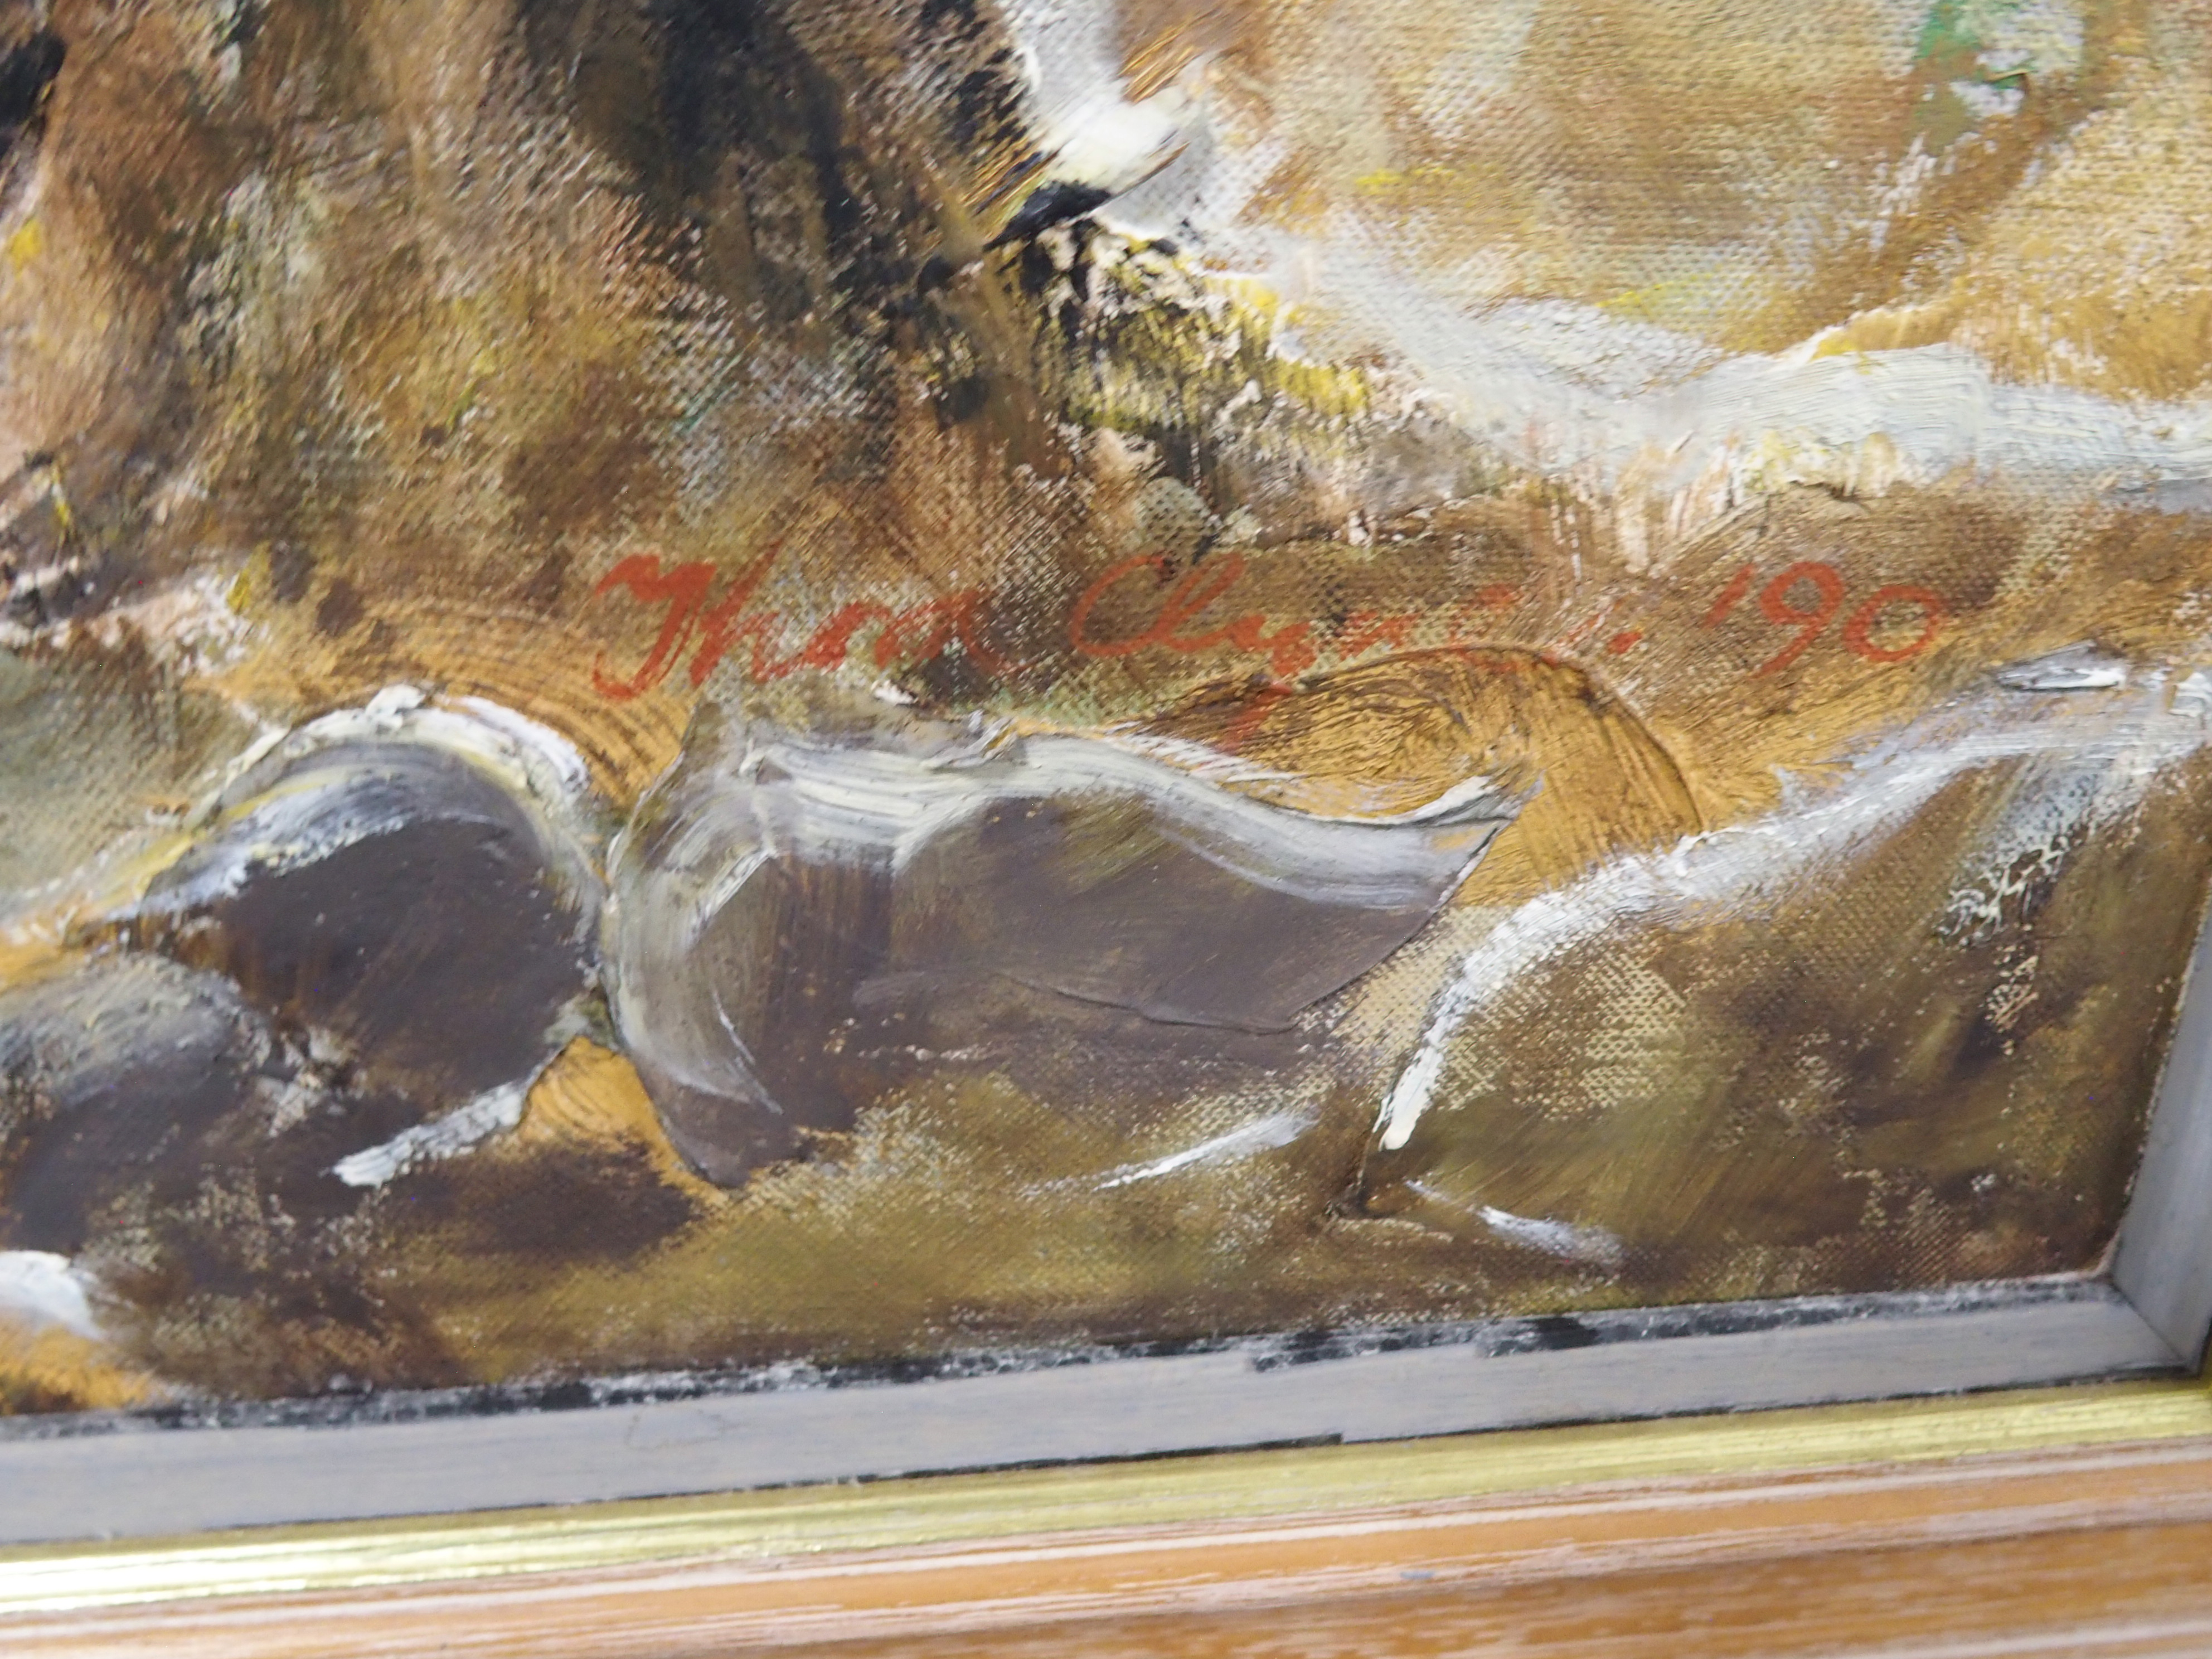 THORA CLYNE SSWA (SCOTTISH 1937-2020) FIELD OF VISION Oil on canvas, signed and dated (19)90, 71 x - Image 3 of 6